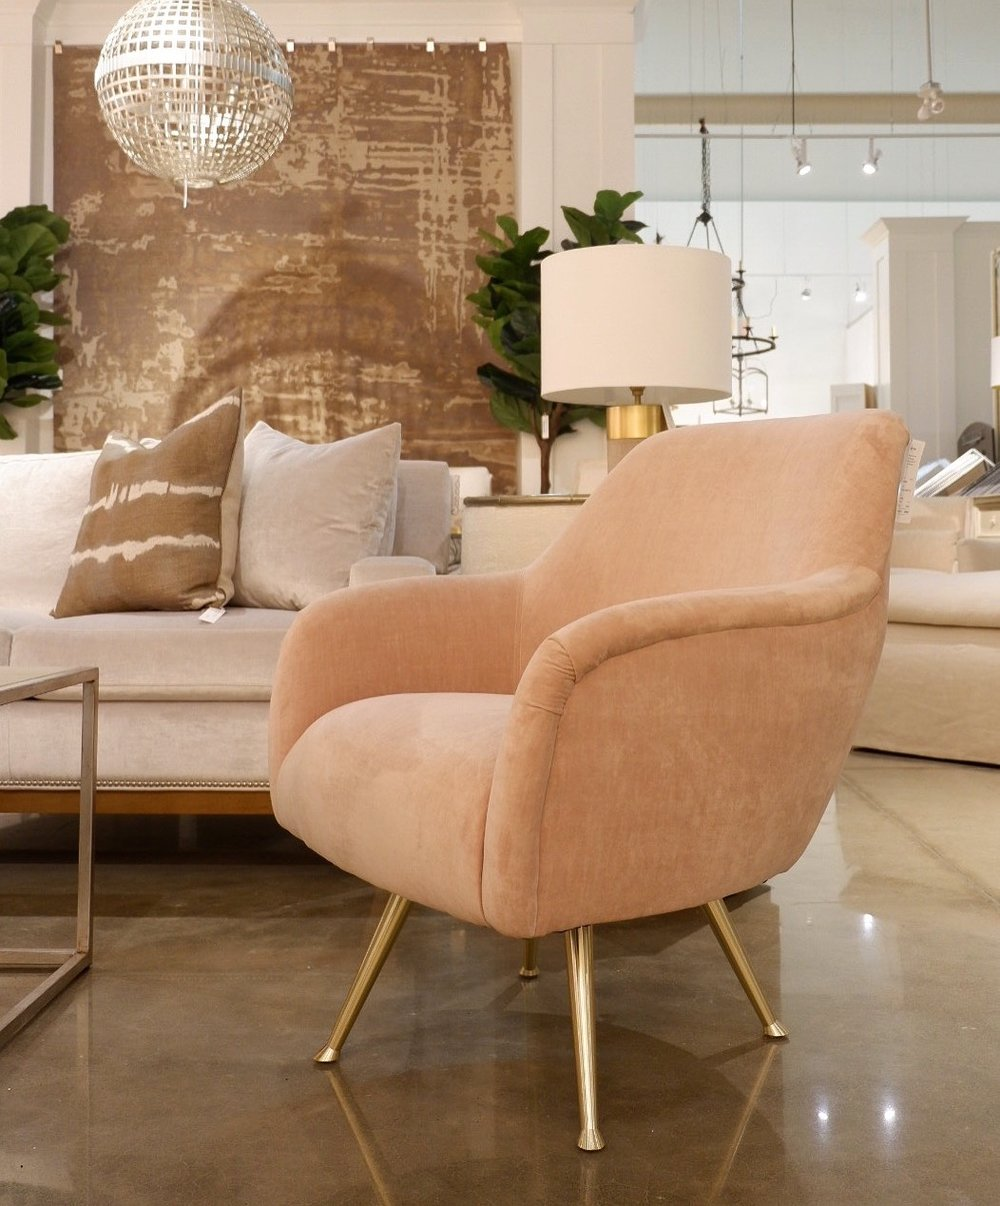 Cocoon-furnishings-LeeIndustrieschair-thedesignedit.jpg